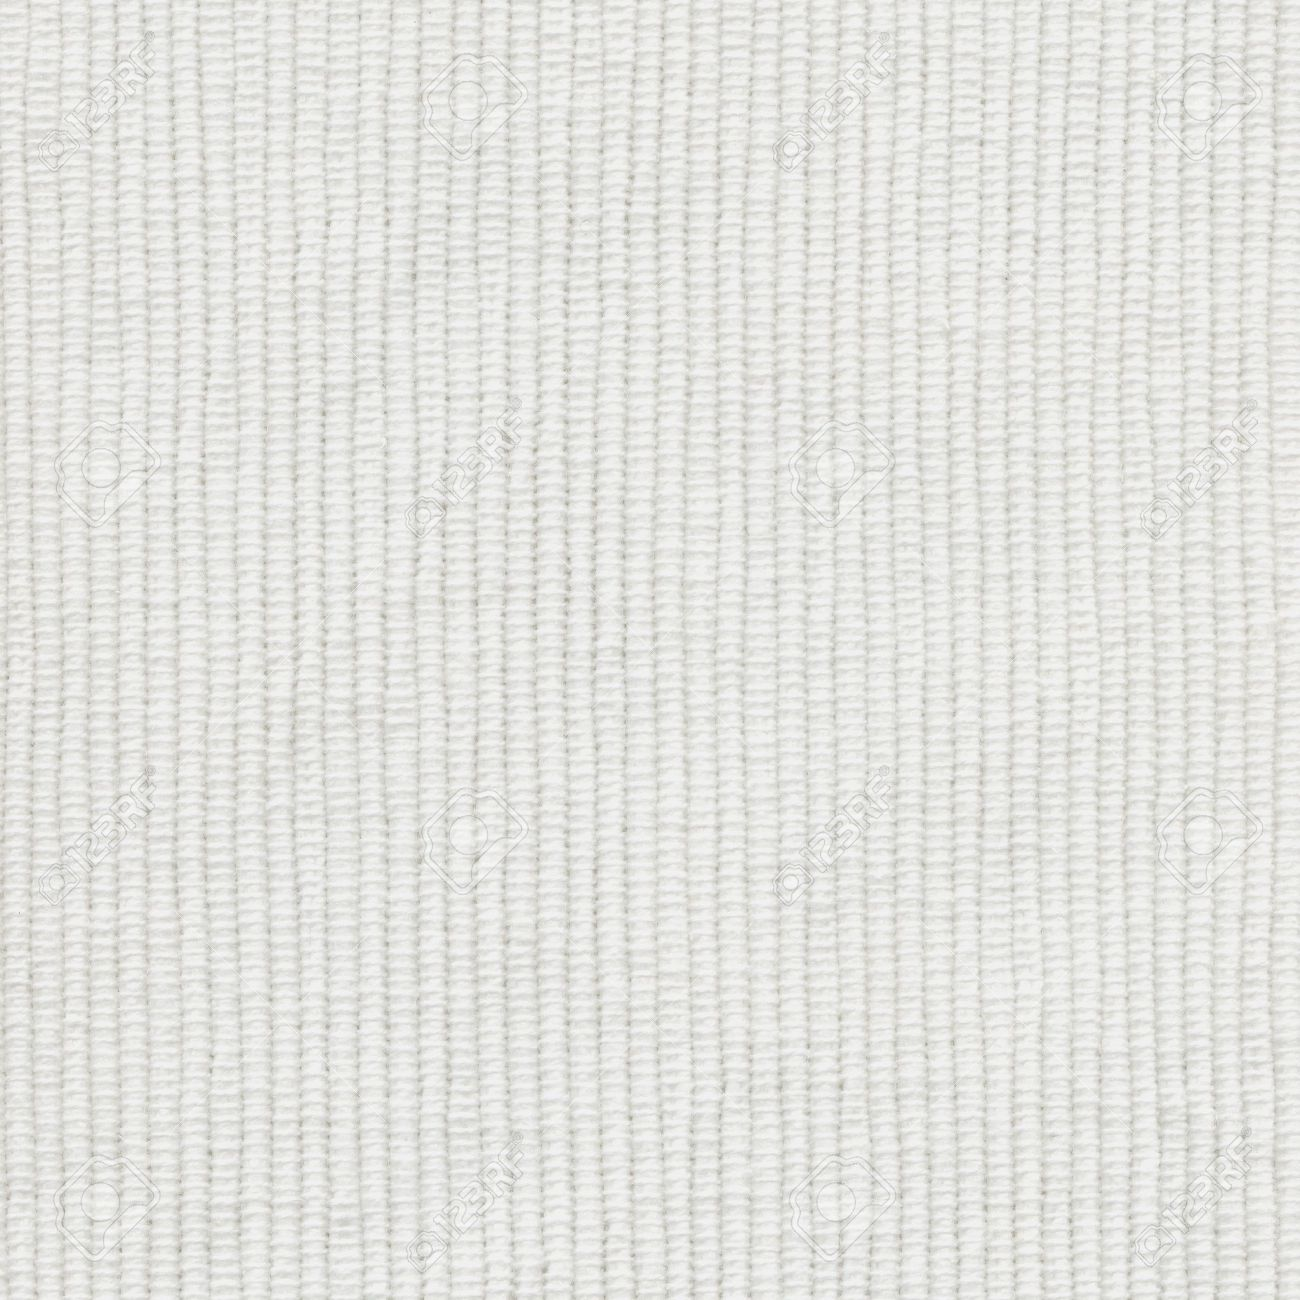 White Striped Cotton Fabric Texture Stock Photo, Picture And ... for Soft White Cotton Texture  181plt